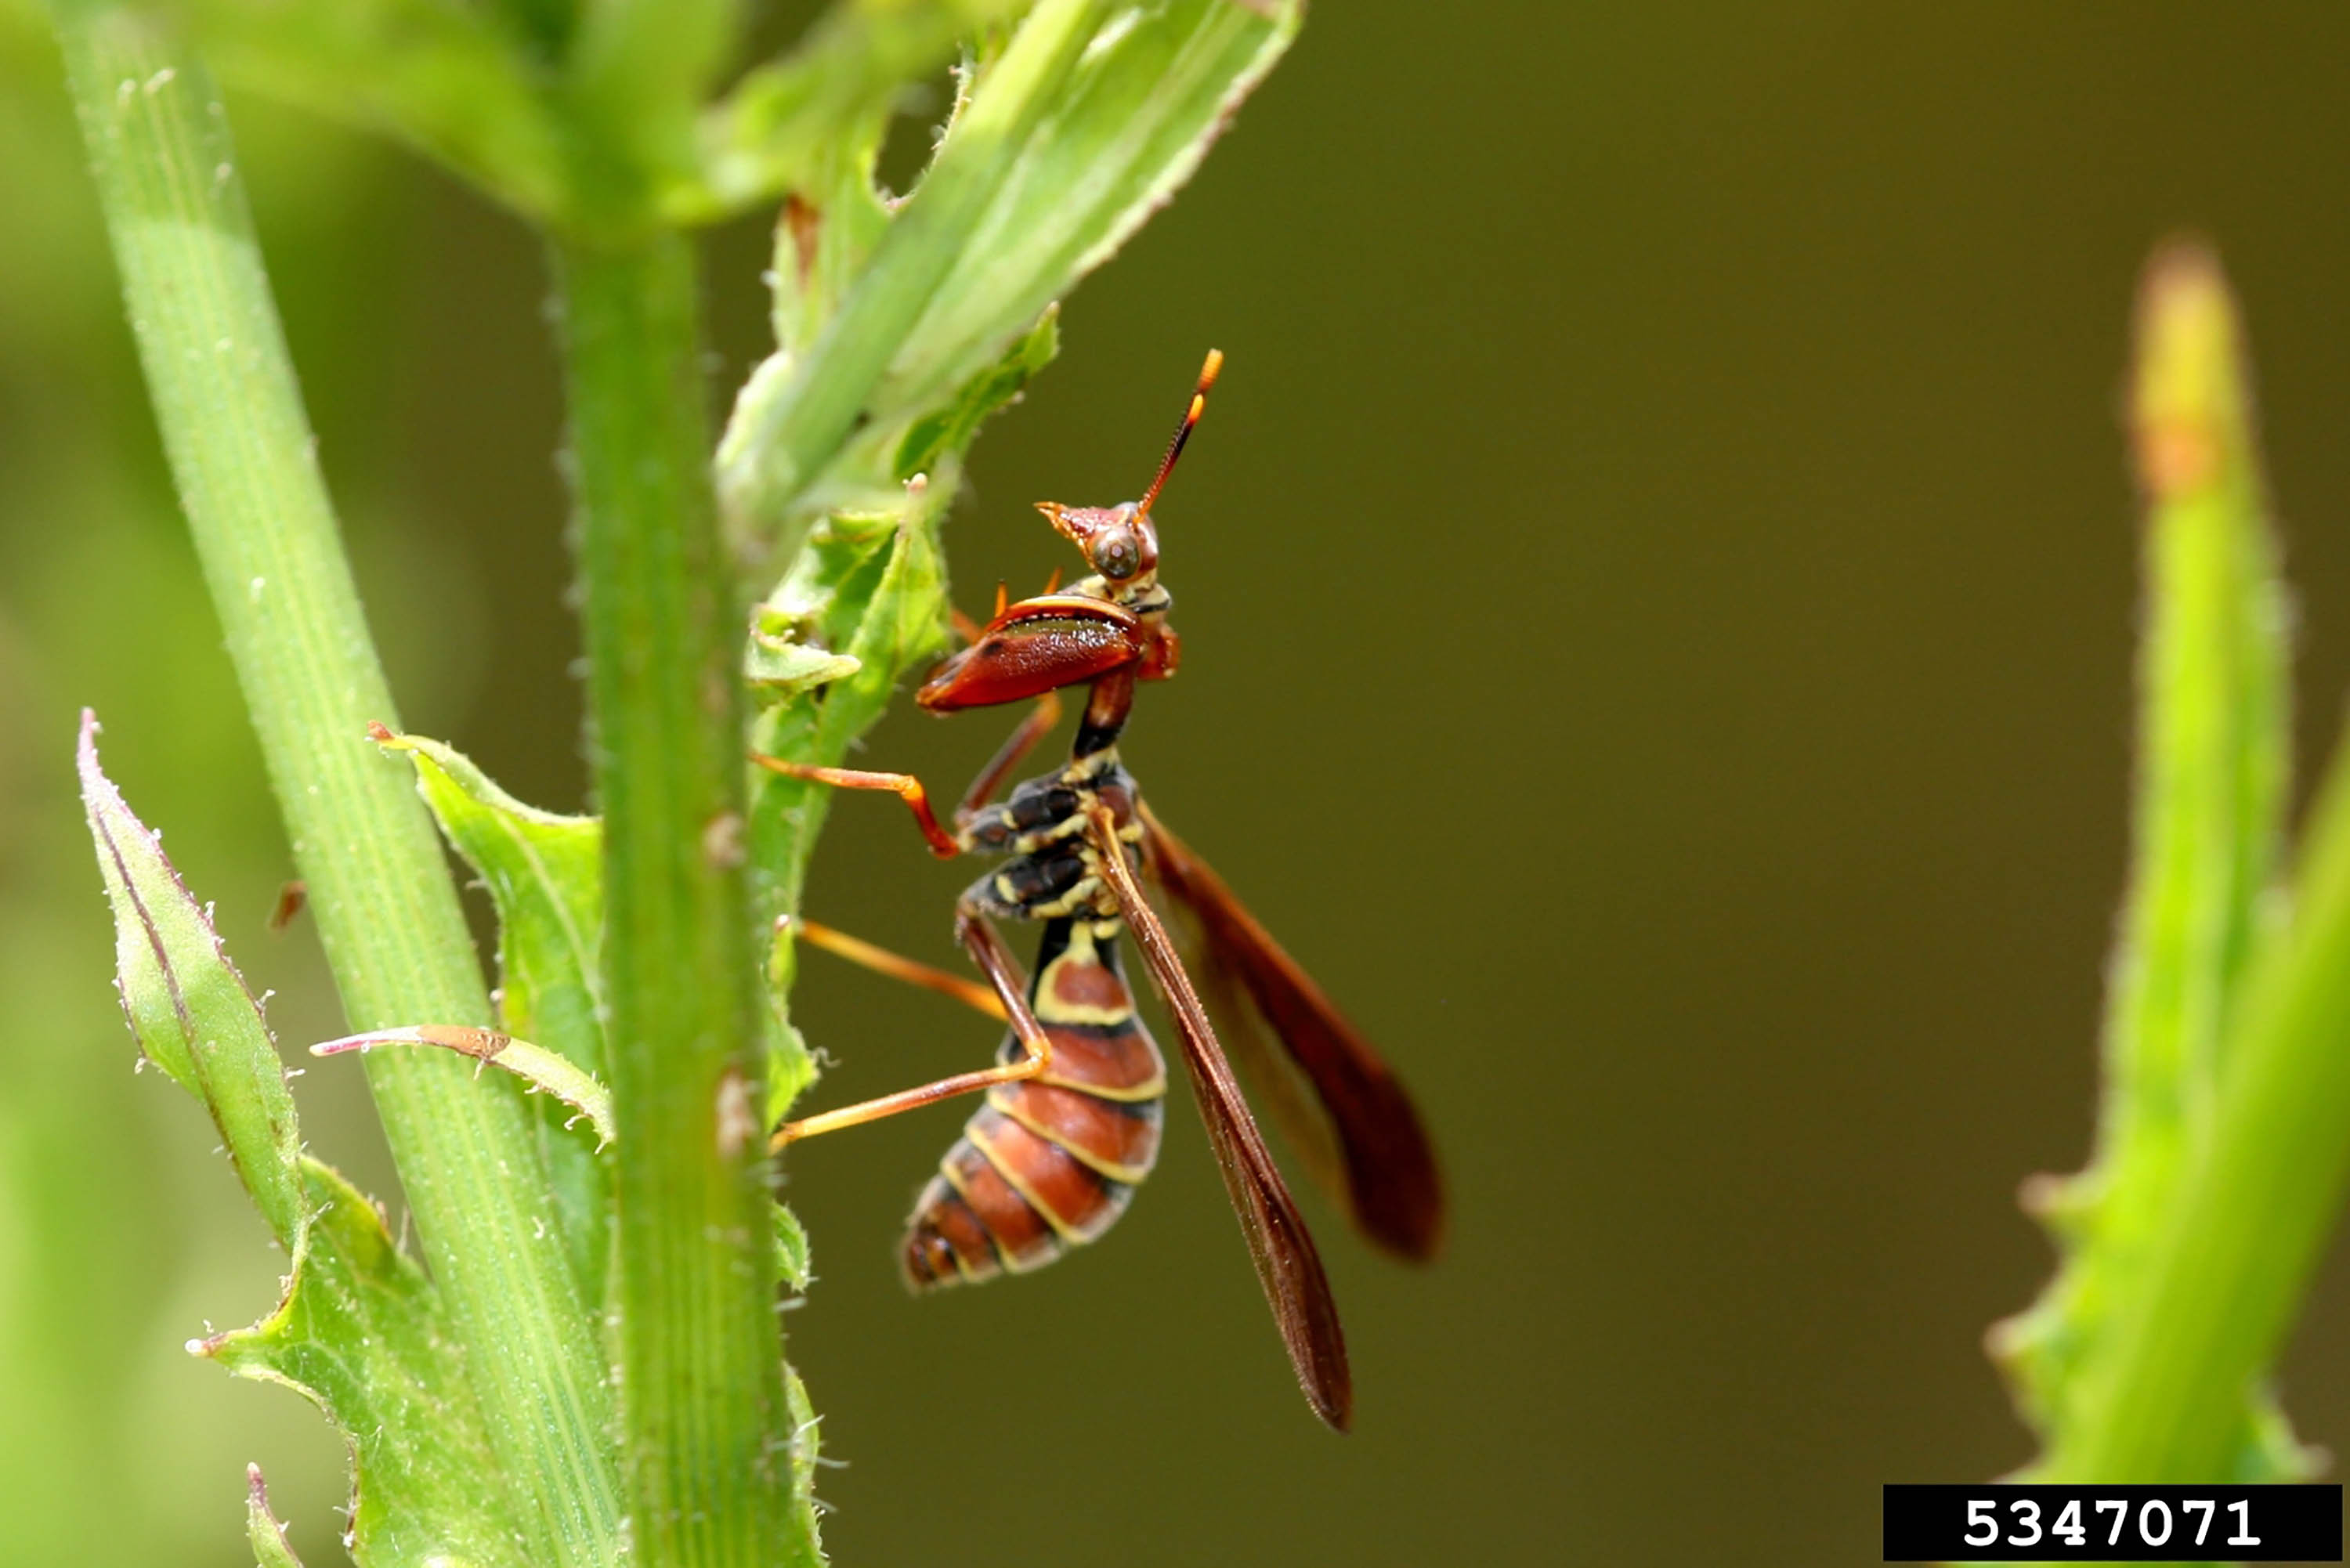 Side view of a wasp on a stem.